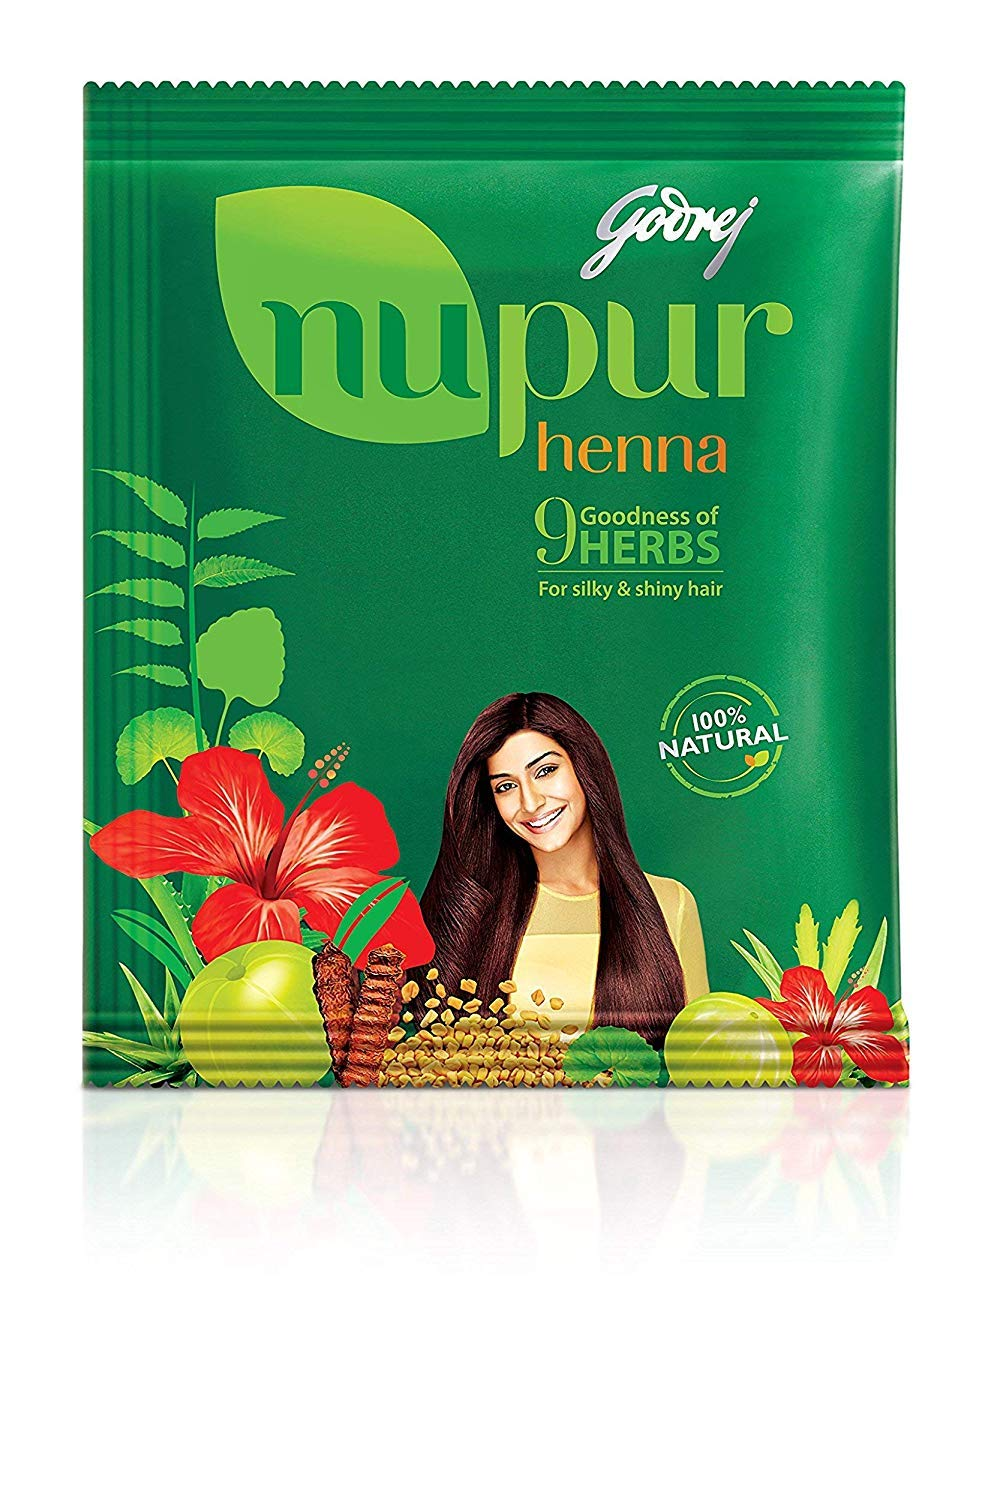 Godrej Nupur Henna Natural Mehndi for Hair Color with Goodness of 9 Herbs 120gram X 3Packs by NUPUR